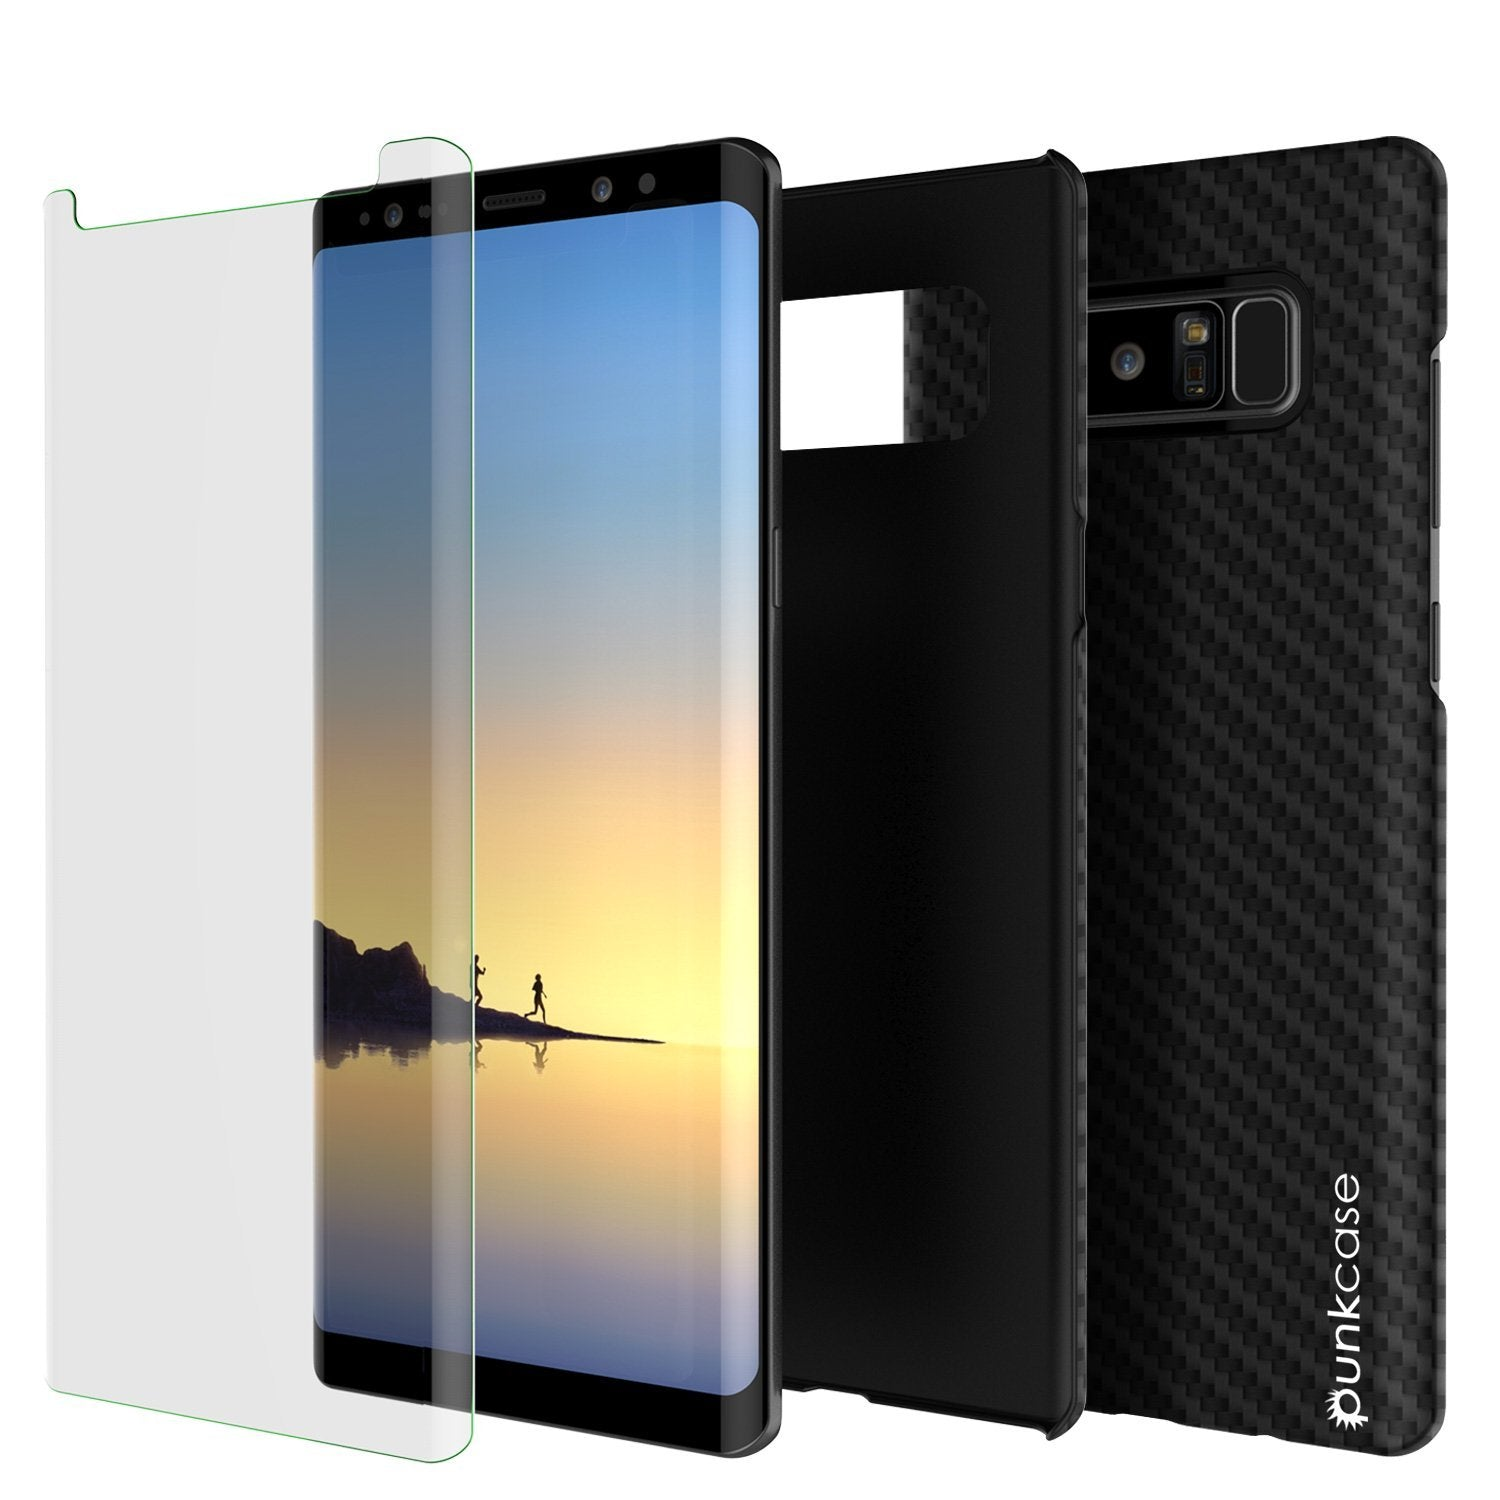 Galaxy Note 8 Case, Punkcase CarbonShield, Heavy Duty & Ultra Thin 2 Piece Dual Layer PU Leather Cover with PUNKSHIELD Screen Protector [jet black]